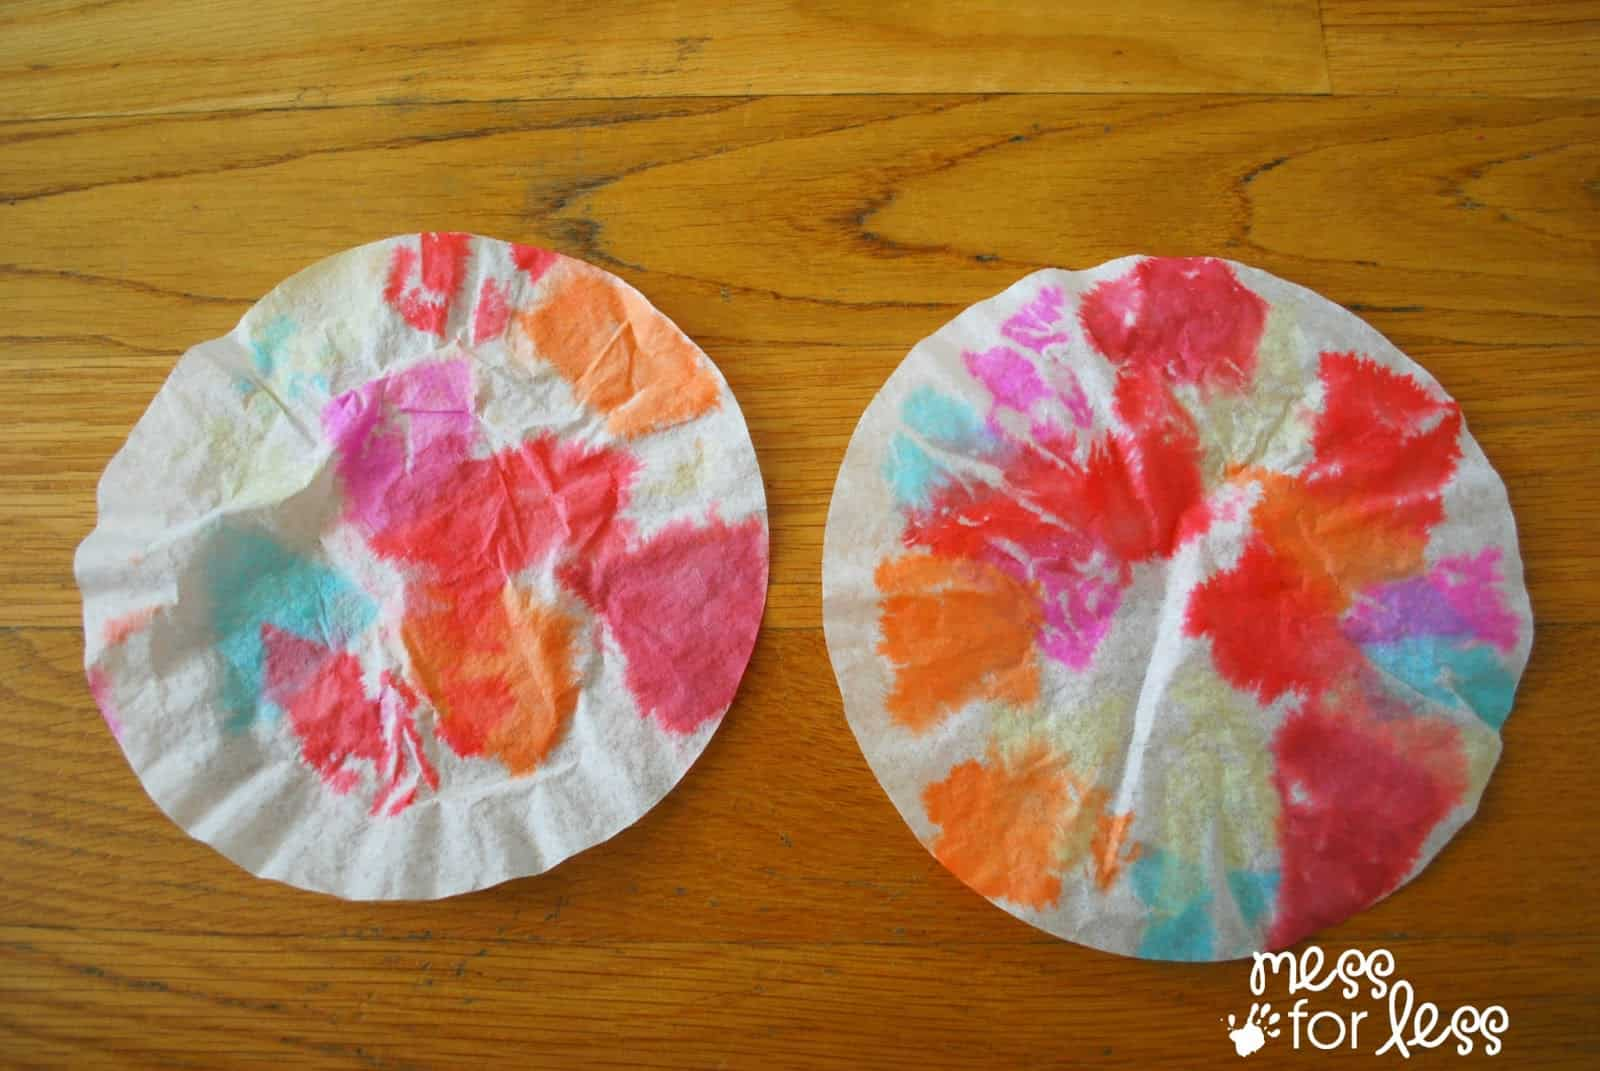 Coffee filter flowers made with tissue paper mess for less coffee filter flowers with tissue paper mightylinksfo Images